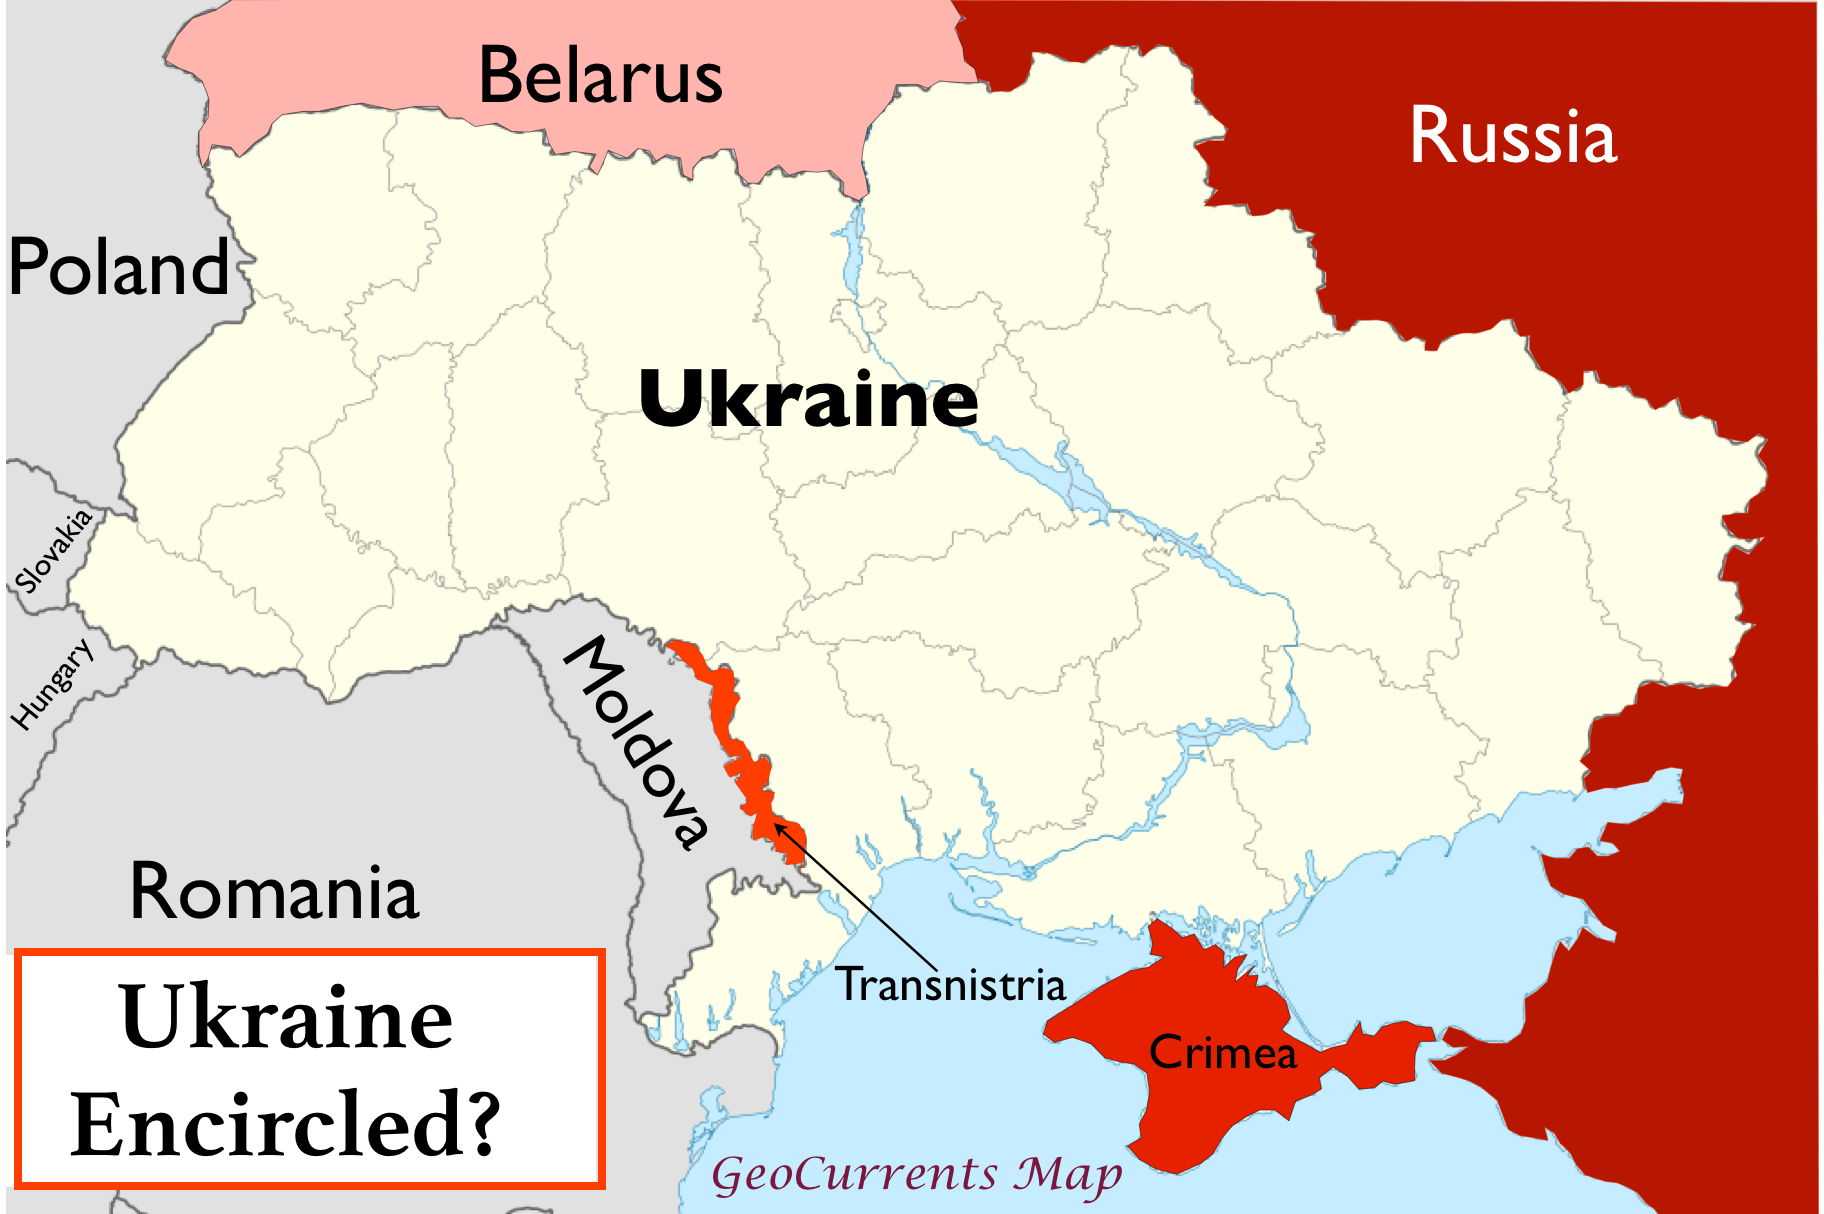 Russian Envelopment Ukraines Geopolitical Complexities GeoCurrents